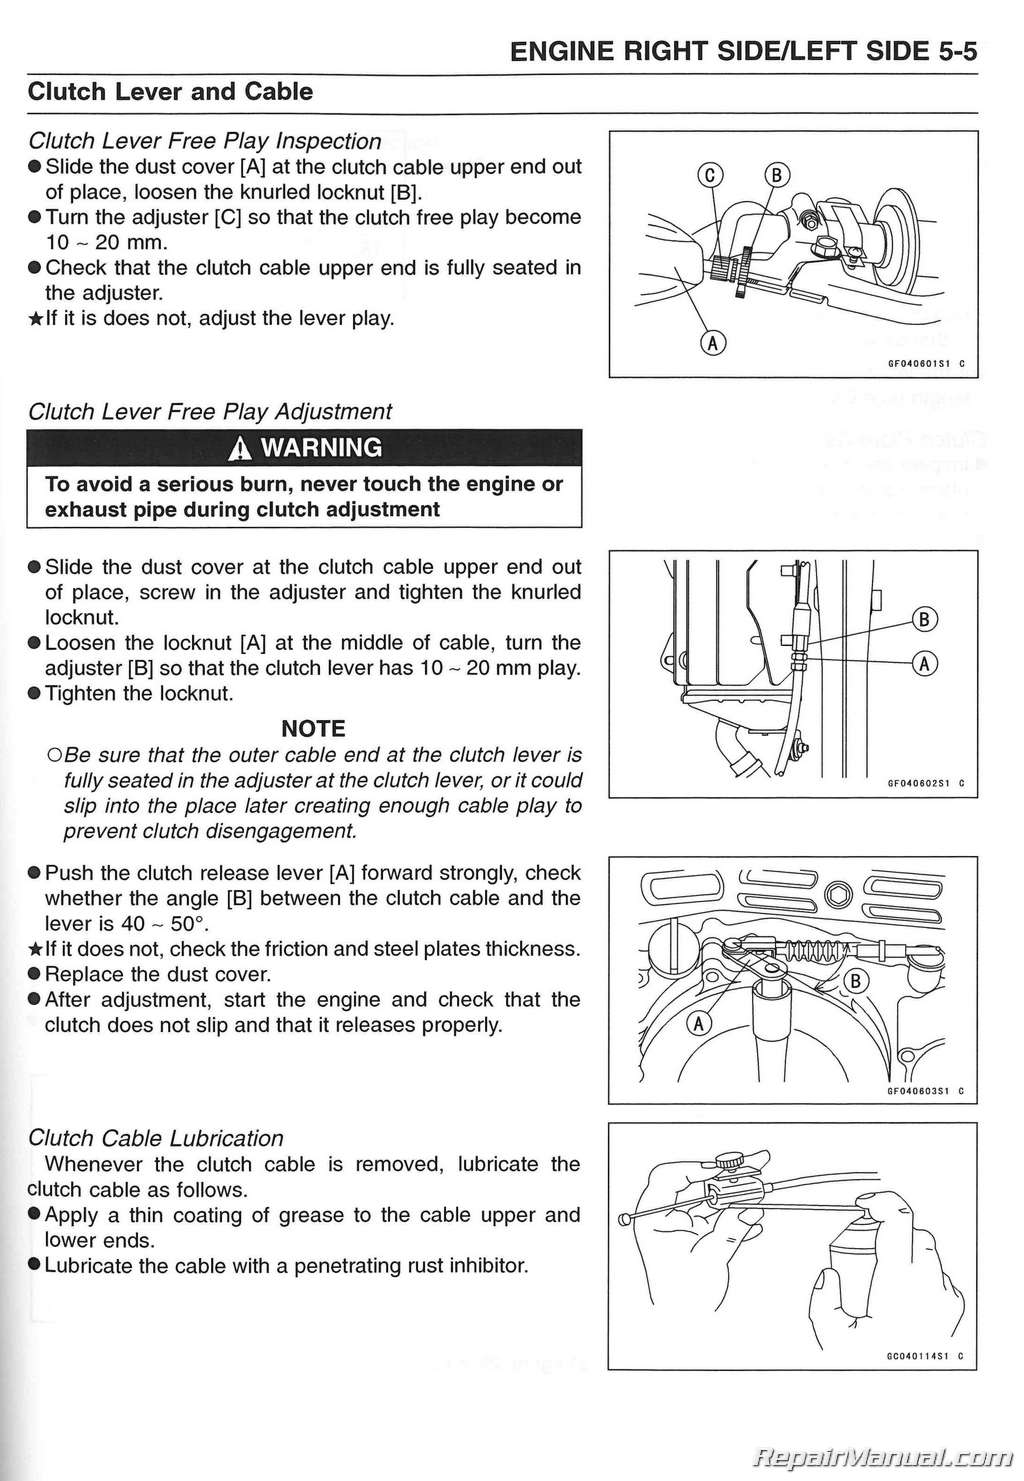 kawasaki klr 250 wiring diagram free download e53aef 2006 kawasaki z1000 parts diagram wiring schematic wiring  e53aef 2006 kawasaki z1000 parts